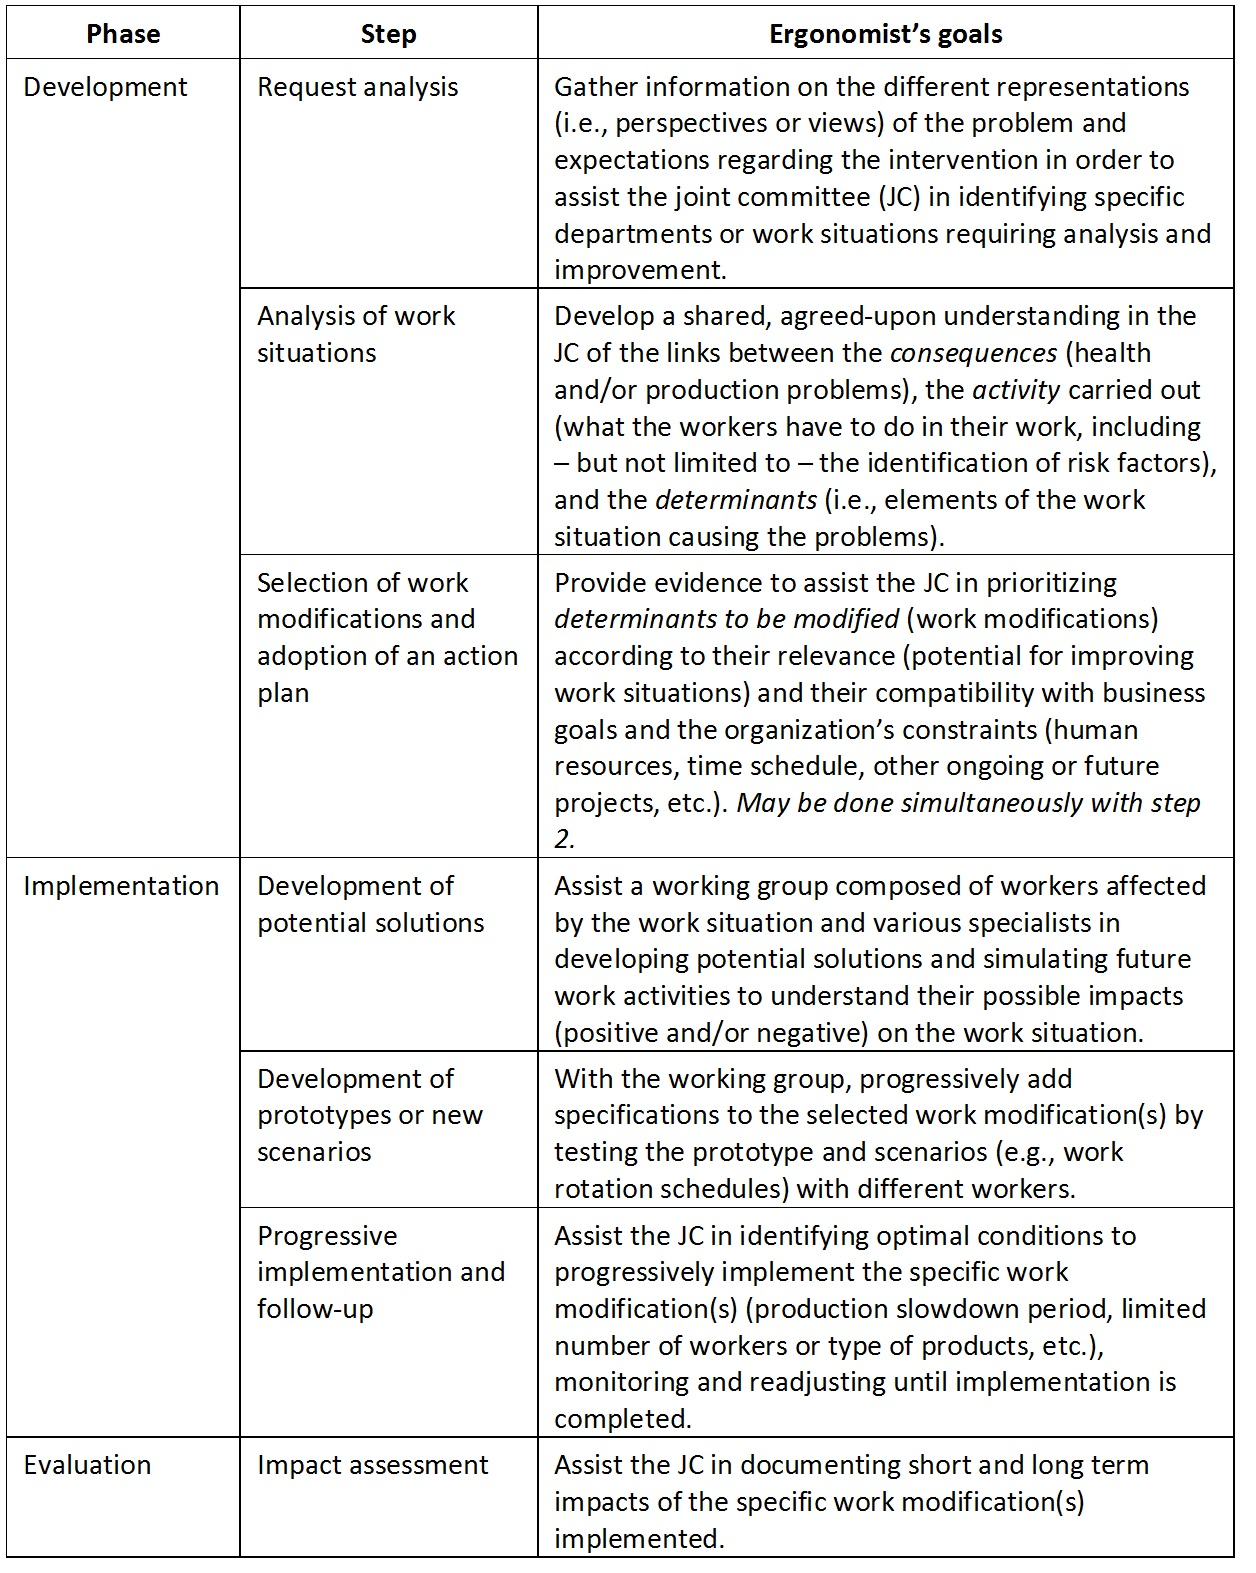 Table 1. Summary of ergonomic intervention steps according to textbooks and guidelines